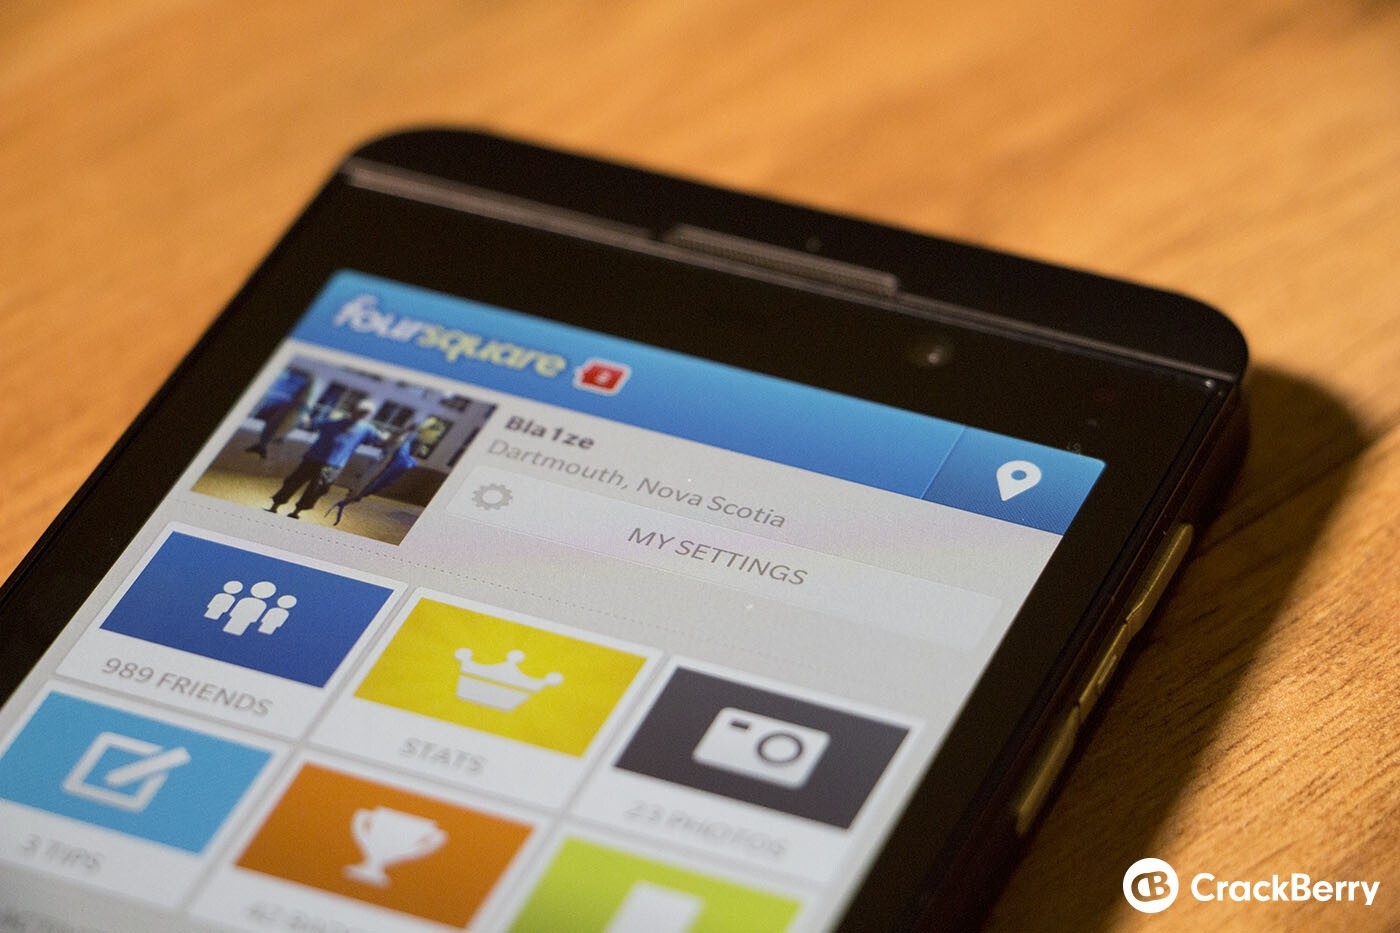 Foursquare for BlackBerry 10 updated to v10.0.0.2877